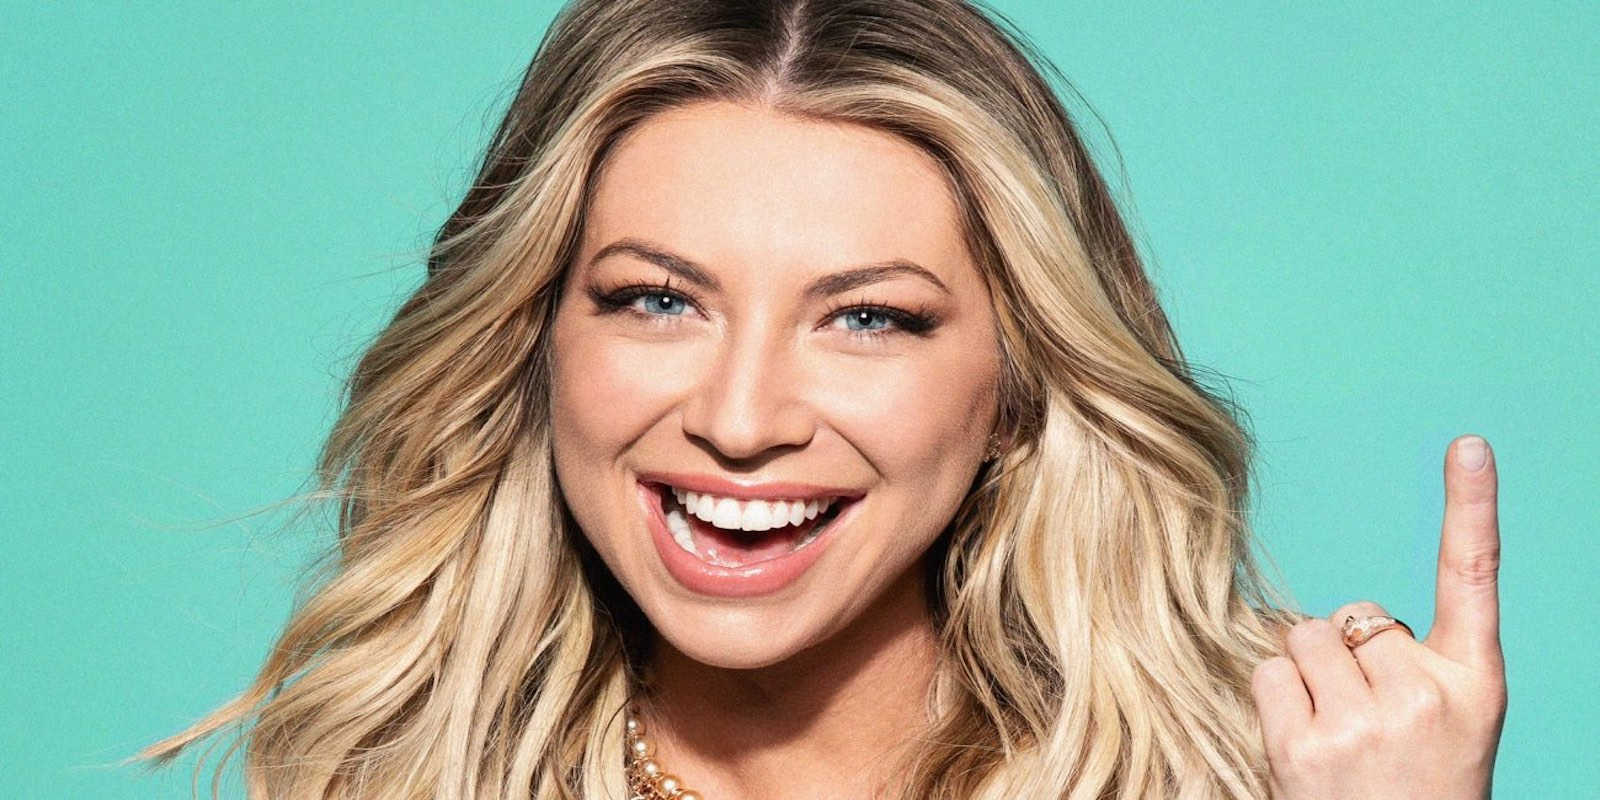 'Vanderpump Rules' star Stassi Schroeder caught the axe after racist actons on set. But as her net worth drops, more racist comments of hers are coming out.